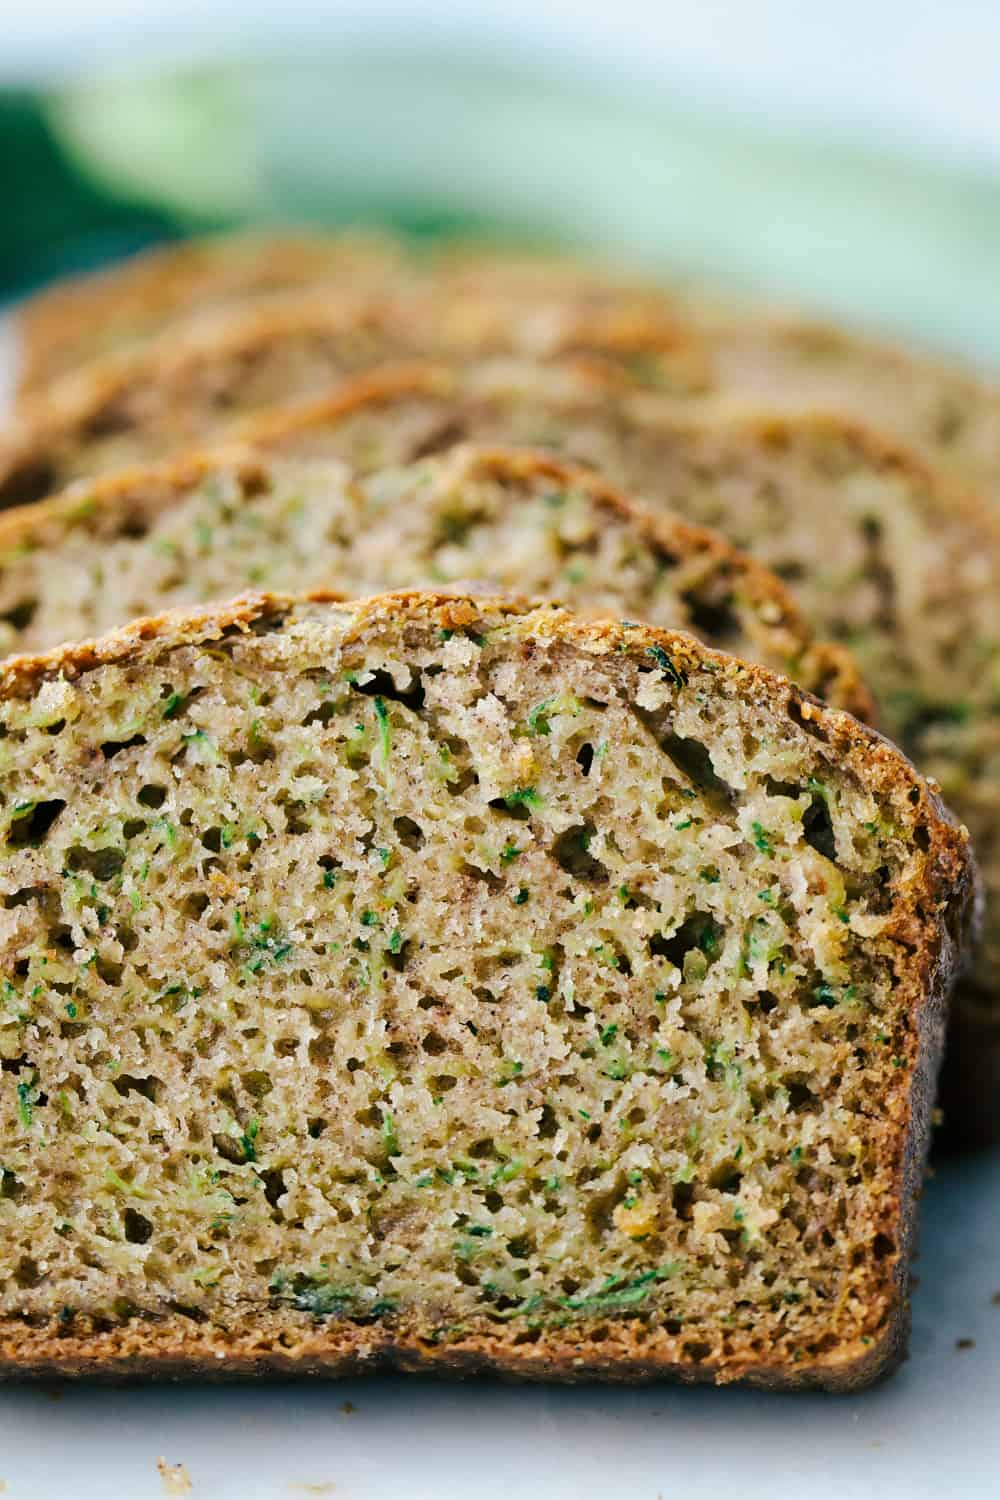 Photo facing the zucchini bread sliced and laying back.